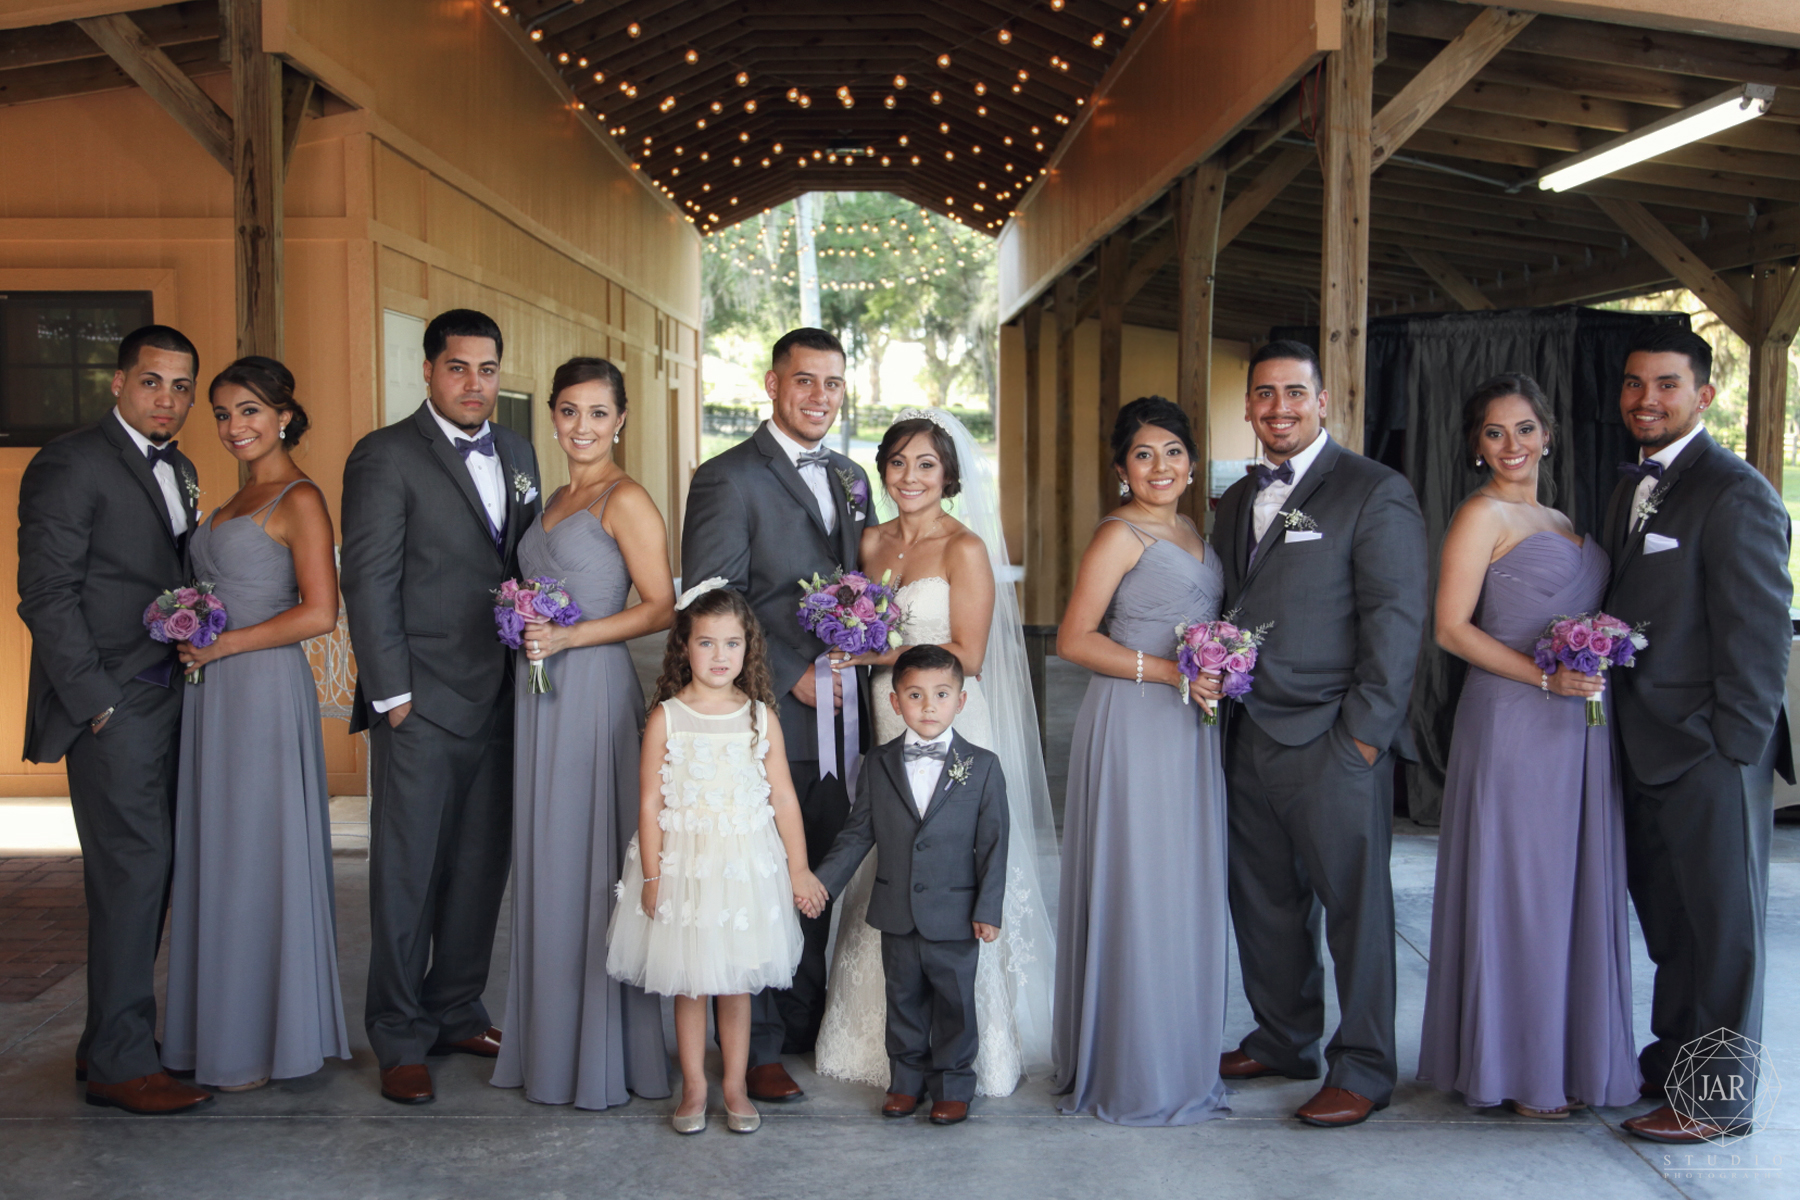 27-bridal-party-lavender-gray-colors-jarstudio-photography-orlando.JPG